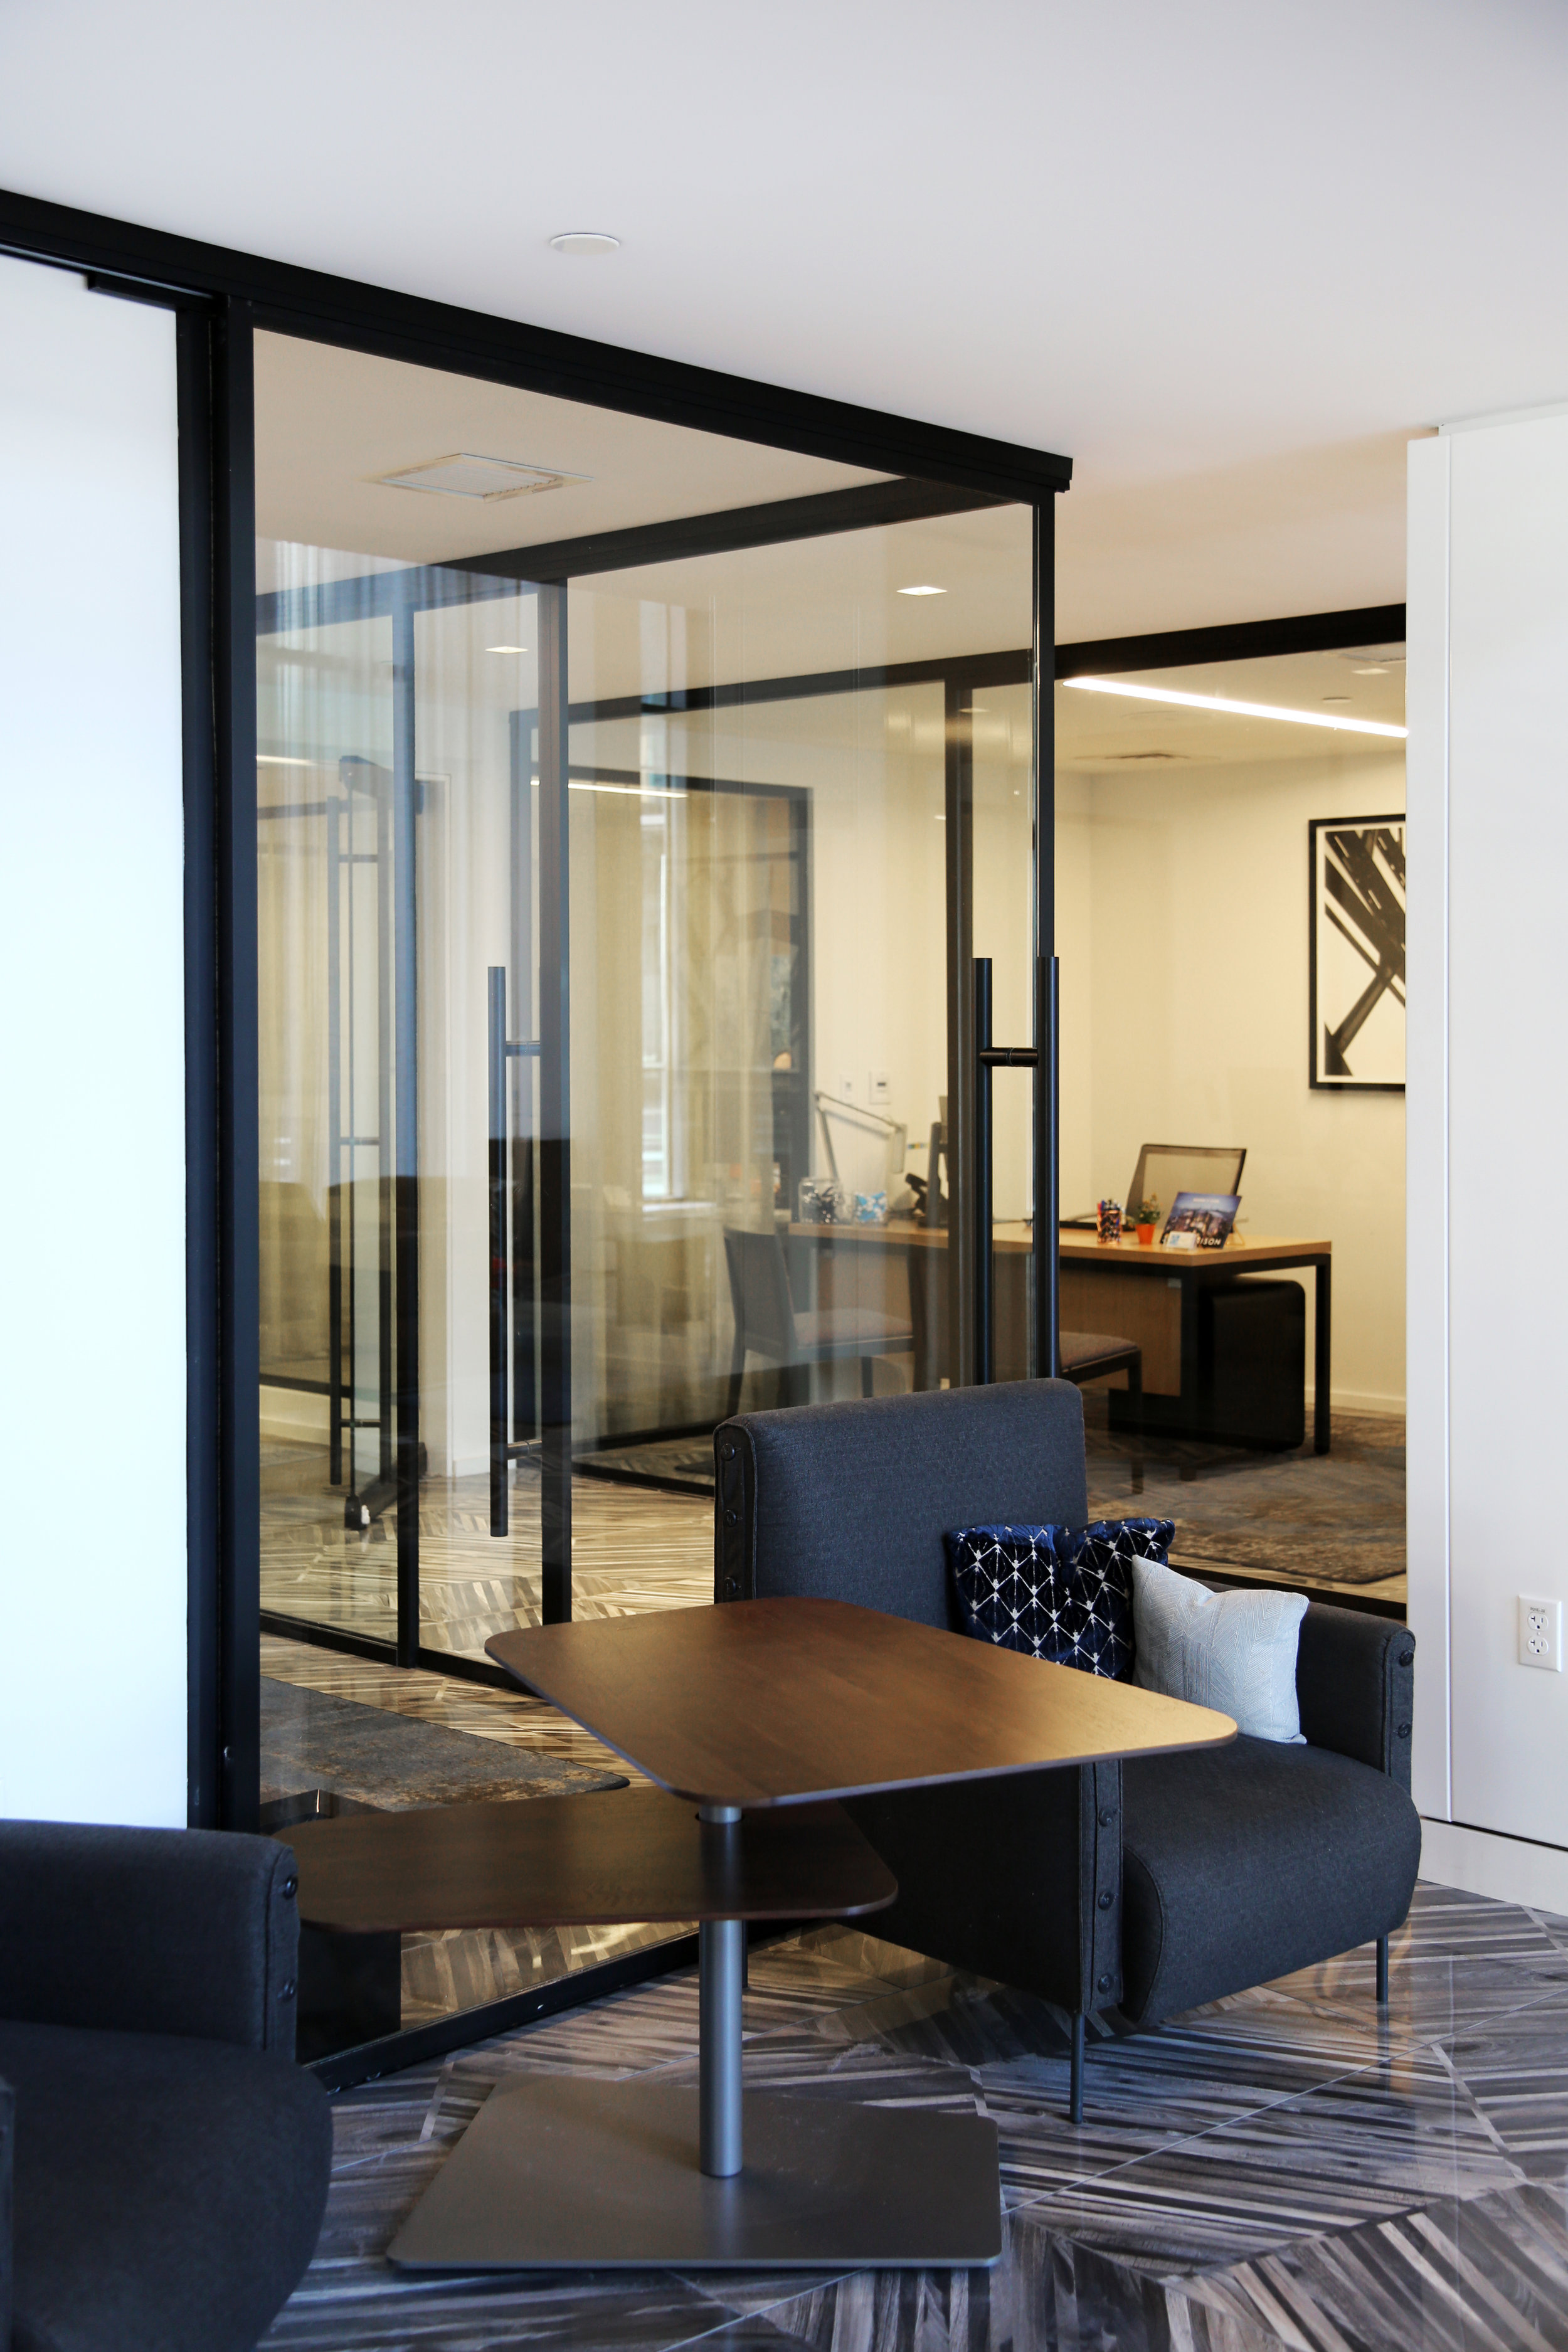 Modernus Black Anodized Aluminum Demountable Framing System - Spaceworks AI.jpg